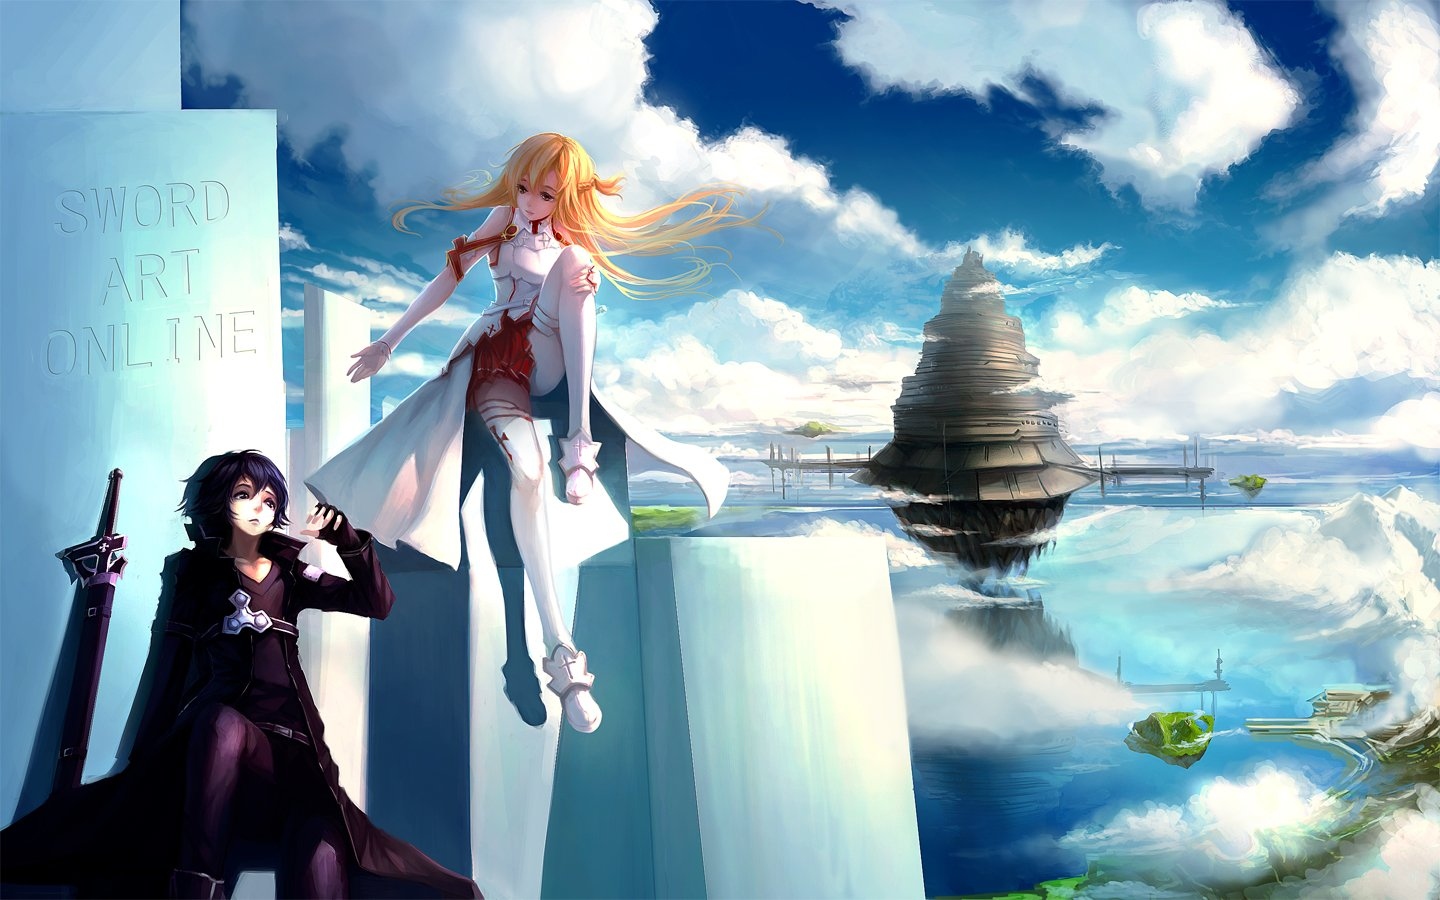 Anime Cloud Sword Art Online Sword Art Online Anime Series